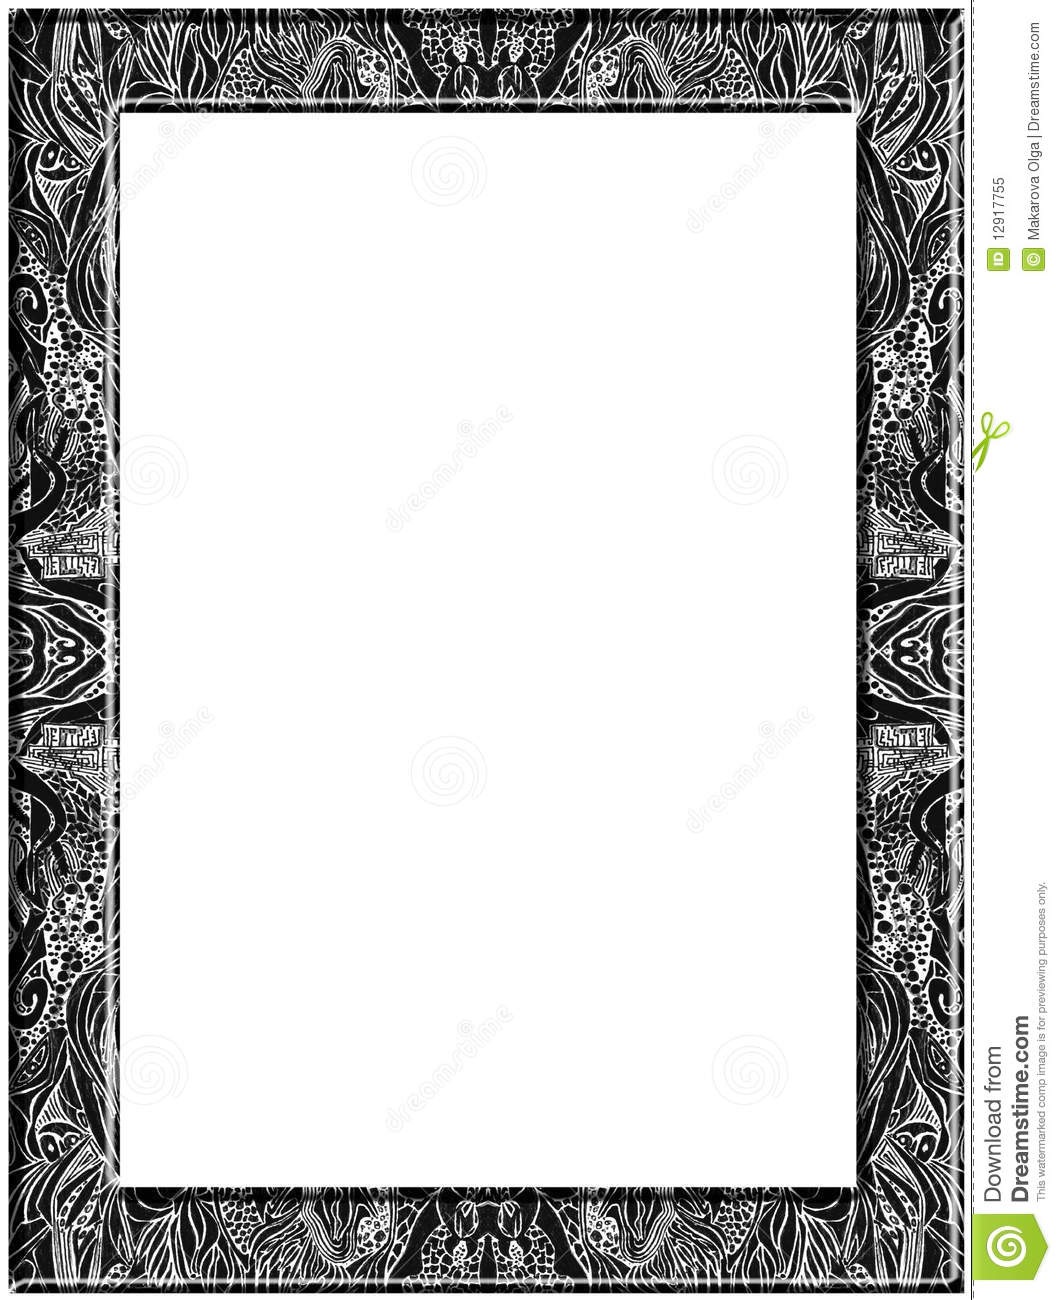 Kleurplaat Fotolijst Abstract Pen Drawing Frame Royalty Free Stock Photo